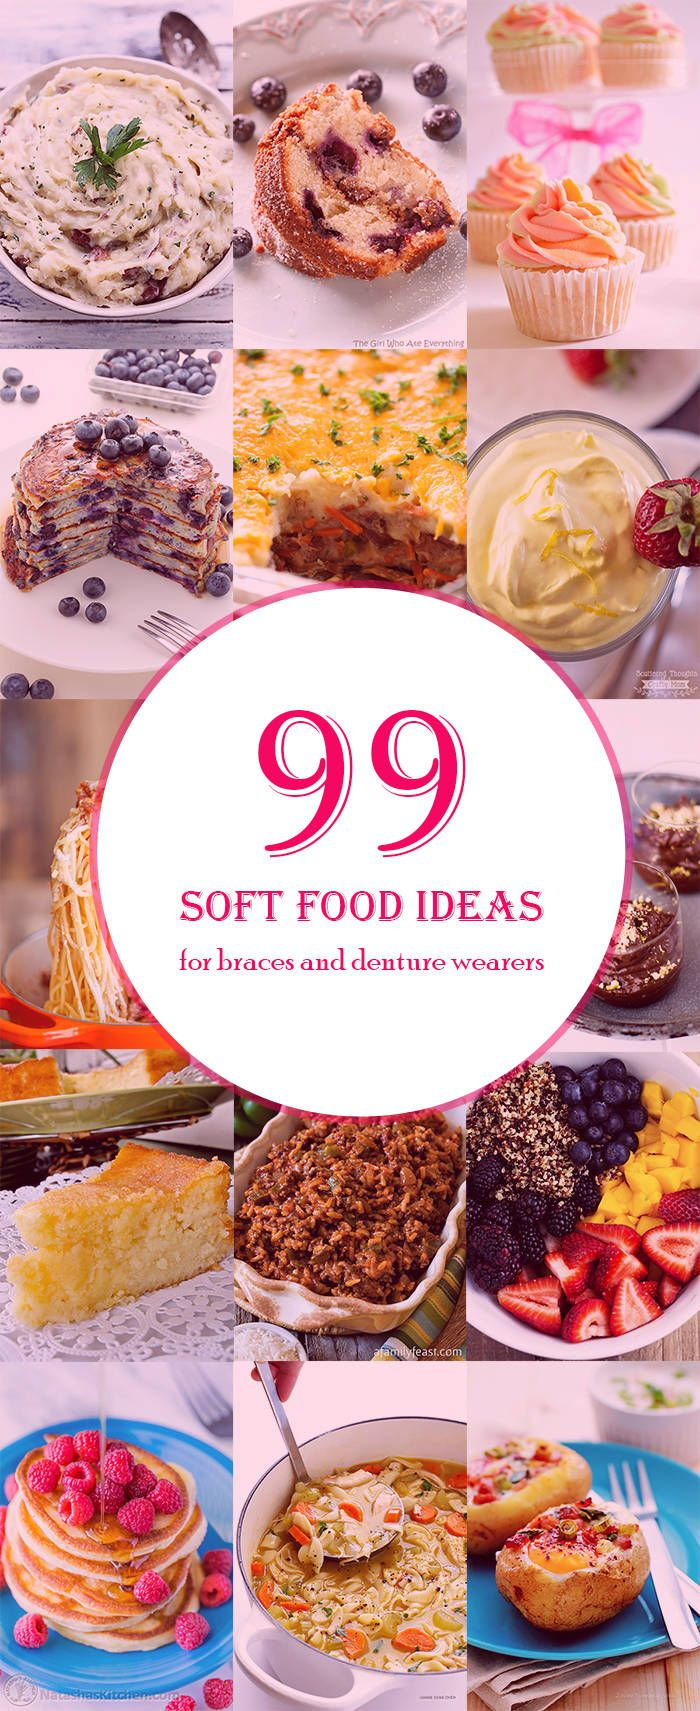 99+ Soft Food Diet Ideas For denture and braces wearers